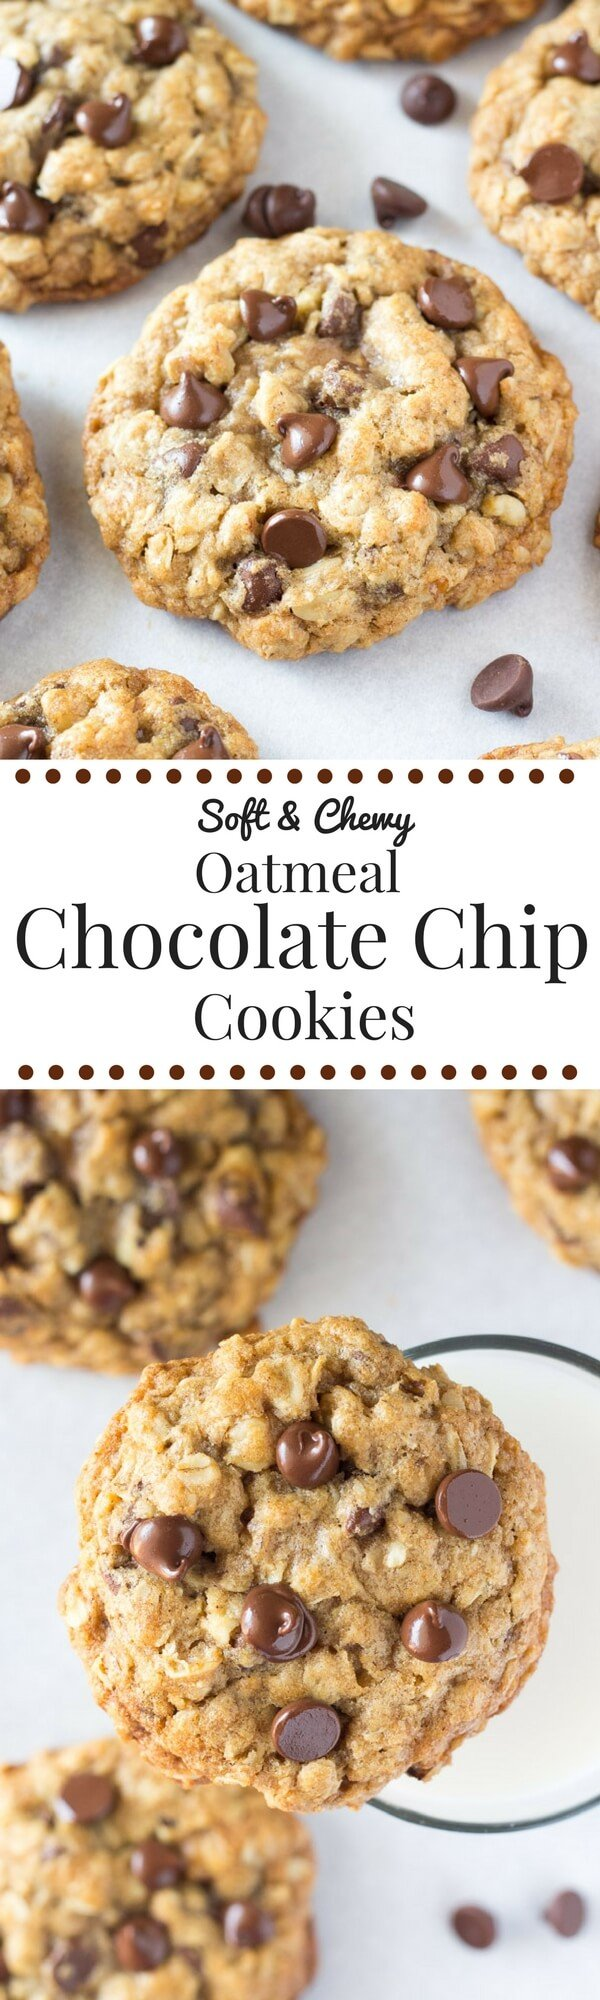 Soft and Chewy Oatmeal Chocolate Chip Cookies - Just so Tasty